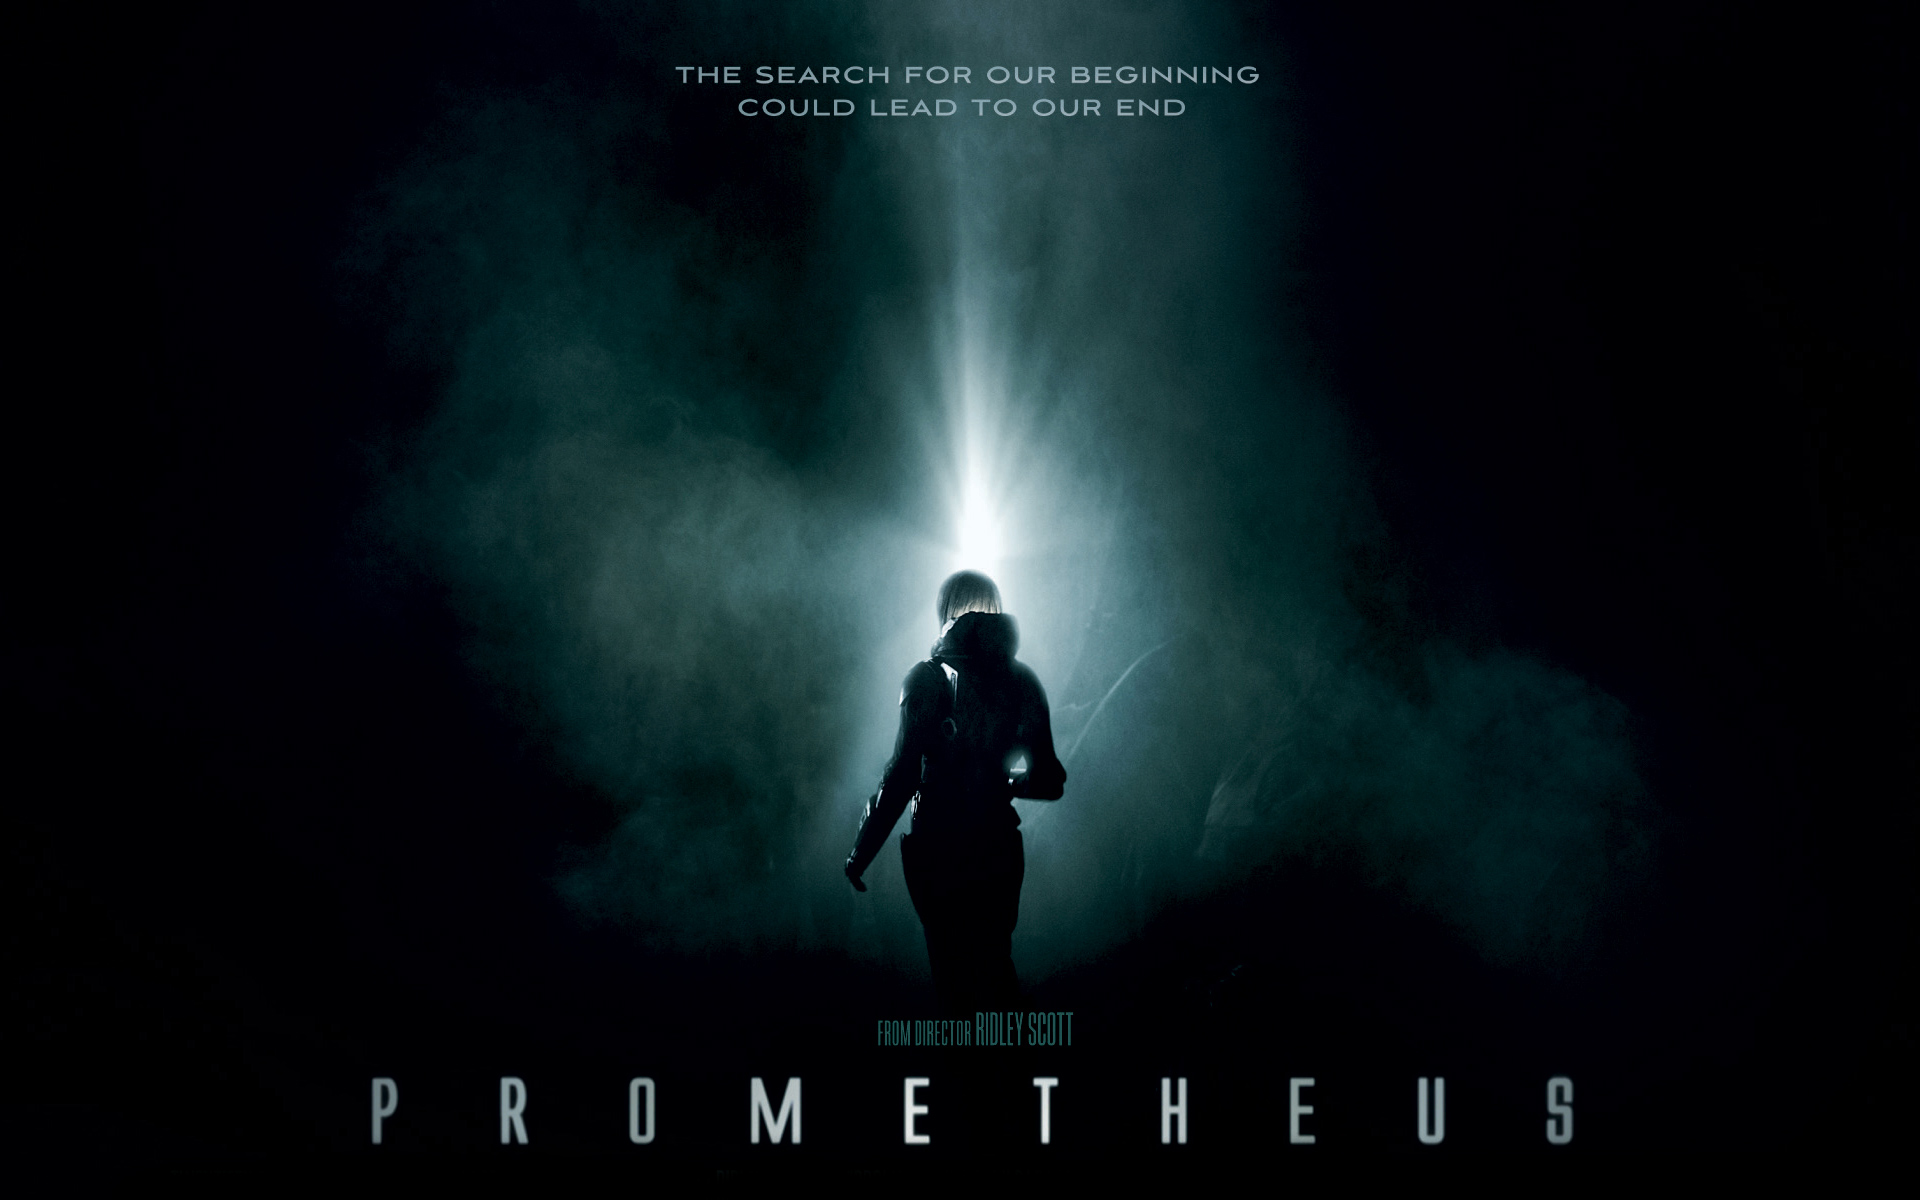 Prometheus 4k Wallpapers For Your Desktop Or Mobile Screen